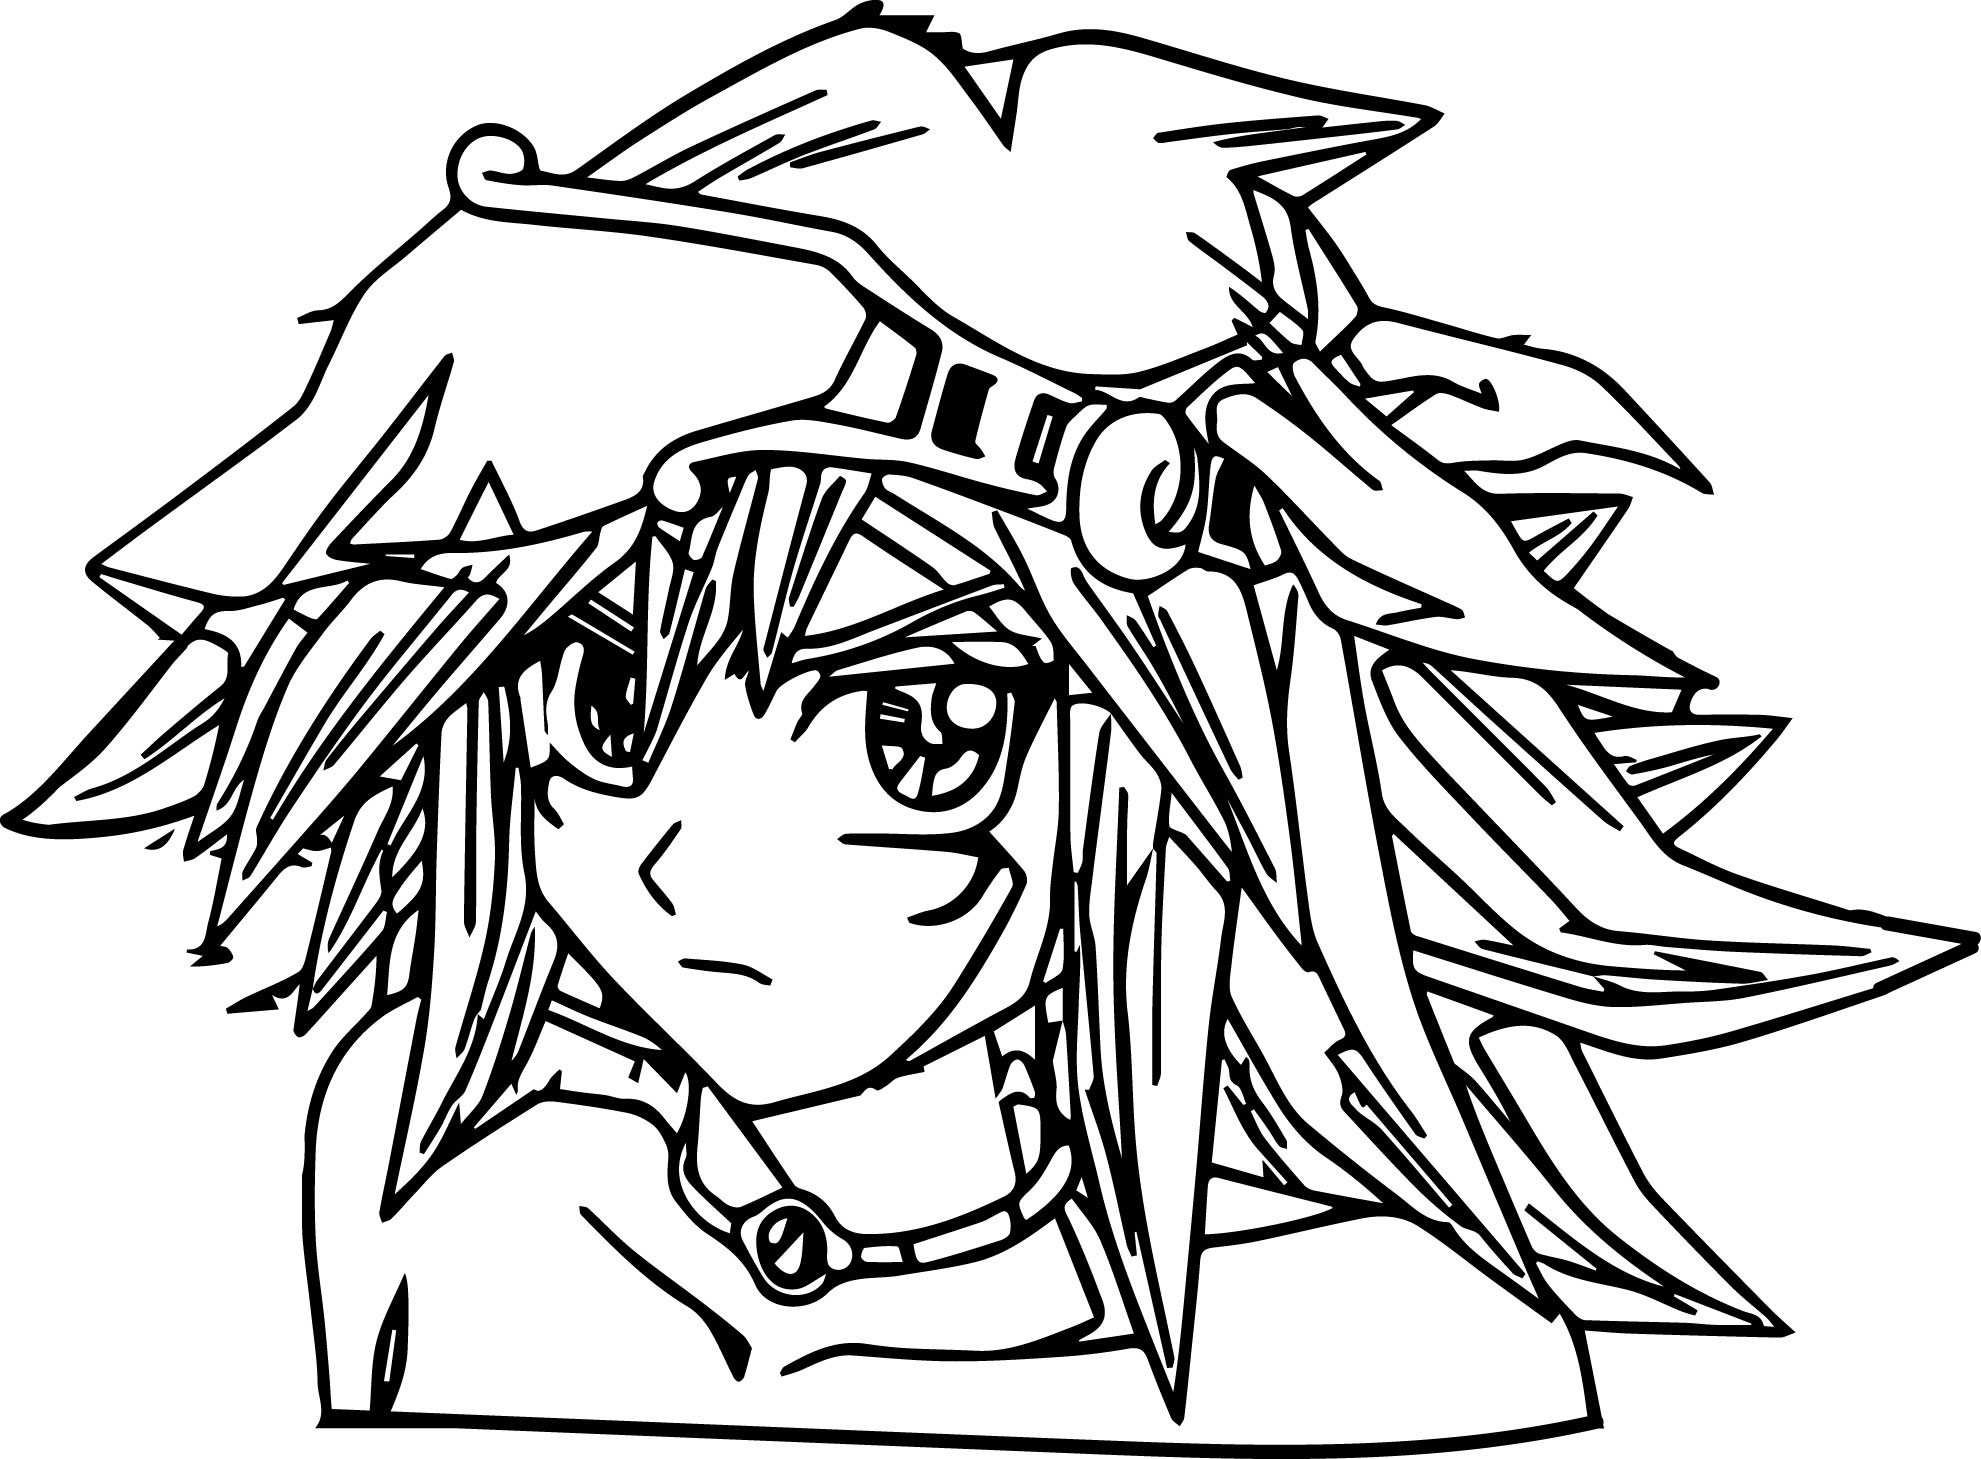 Perfect Yu Gi Oh (Yugioh) Coloring Page